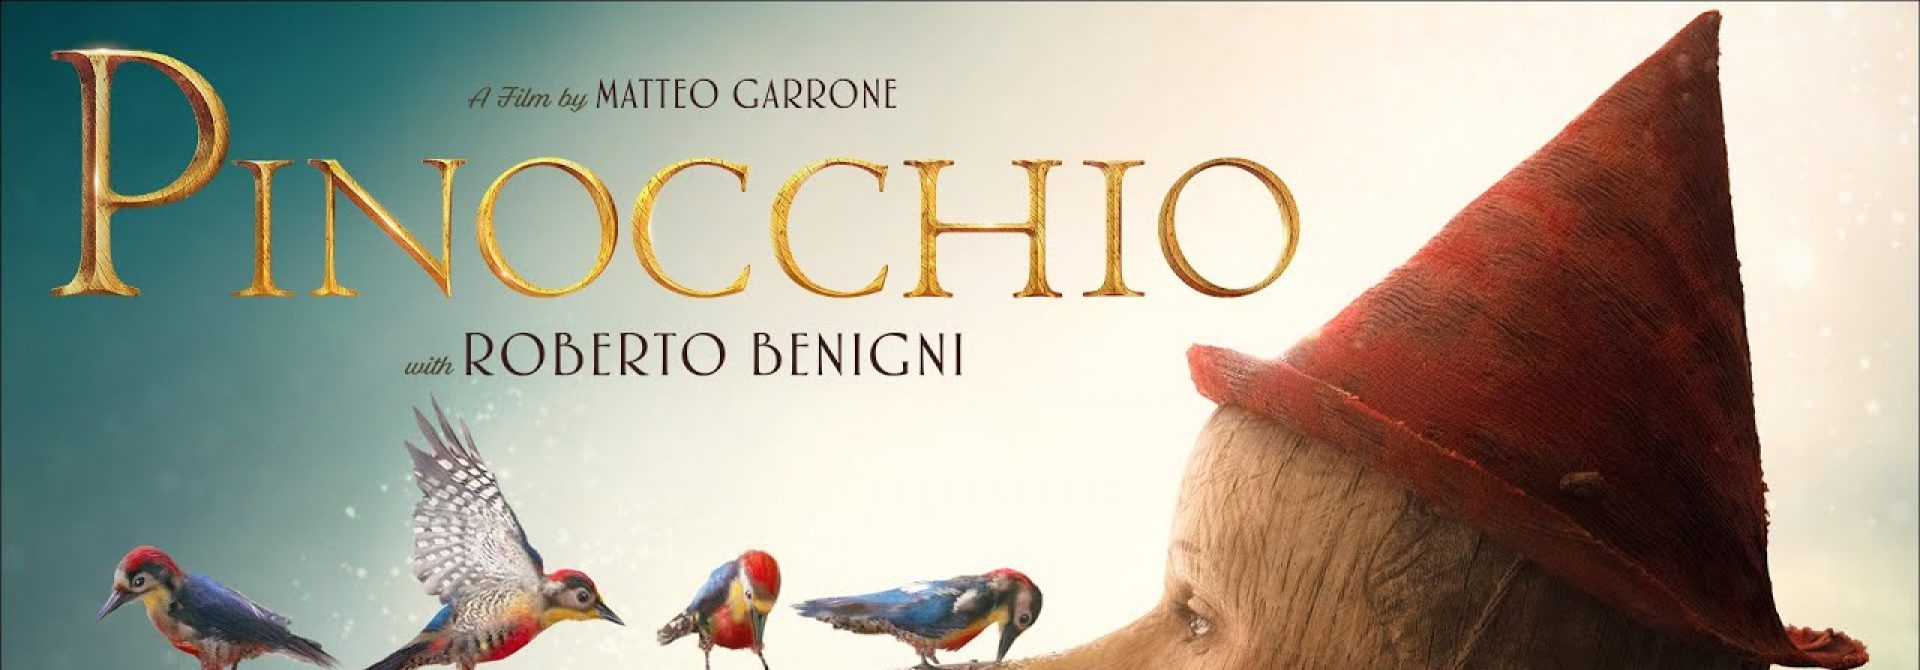 Oscar Best Actor winner Roberto Benigni gives Pinnochio one more try.